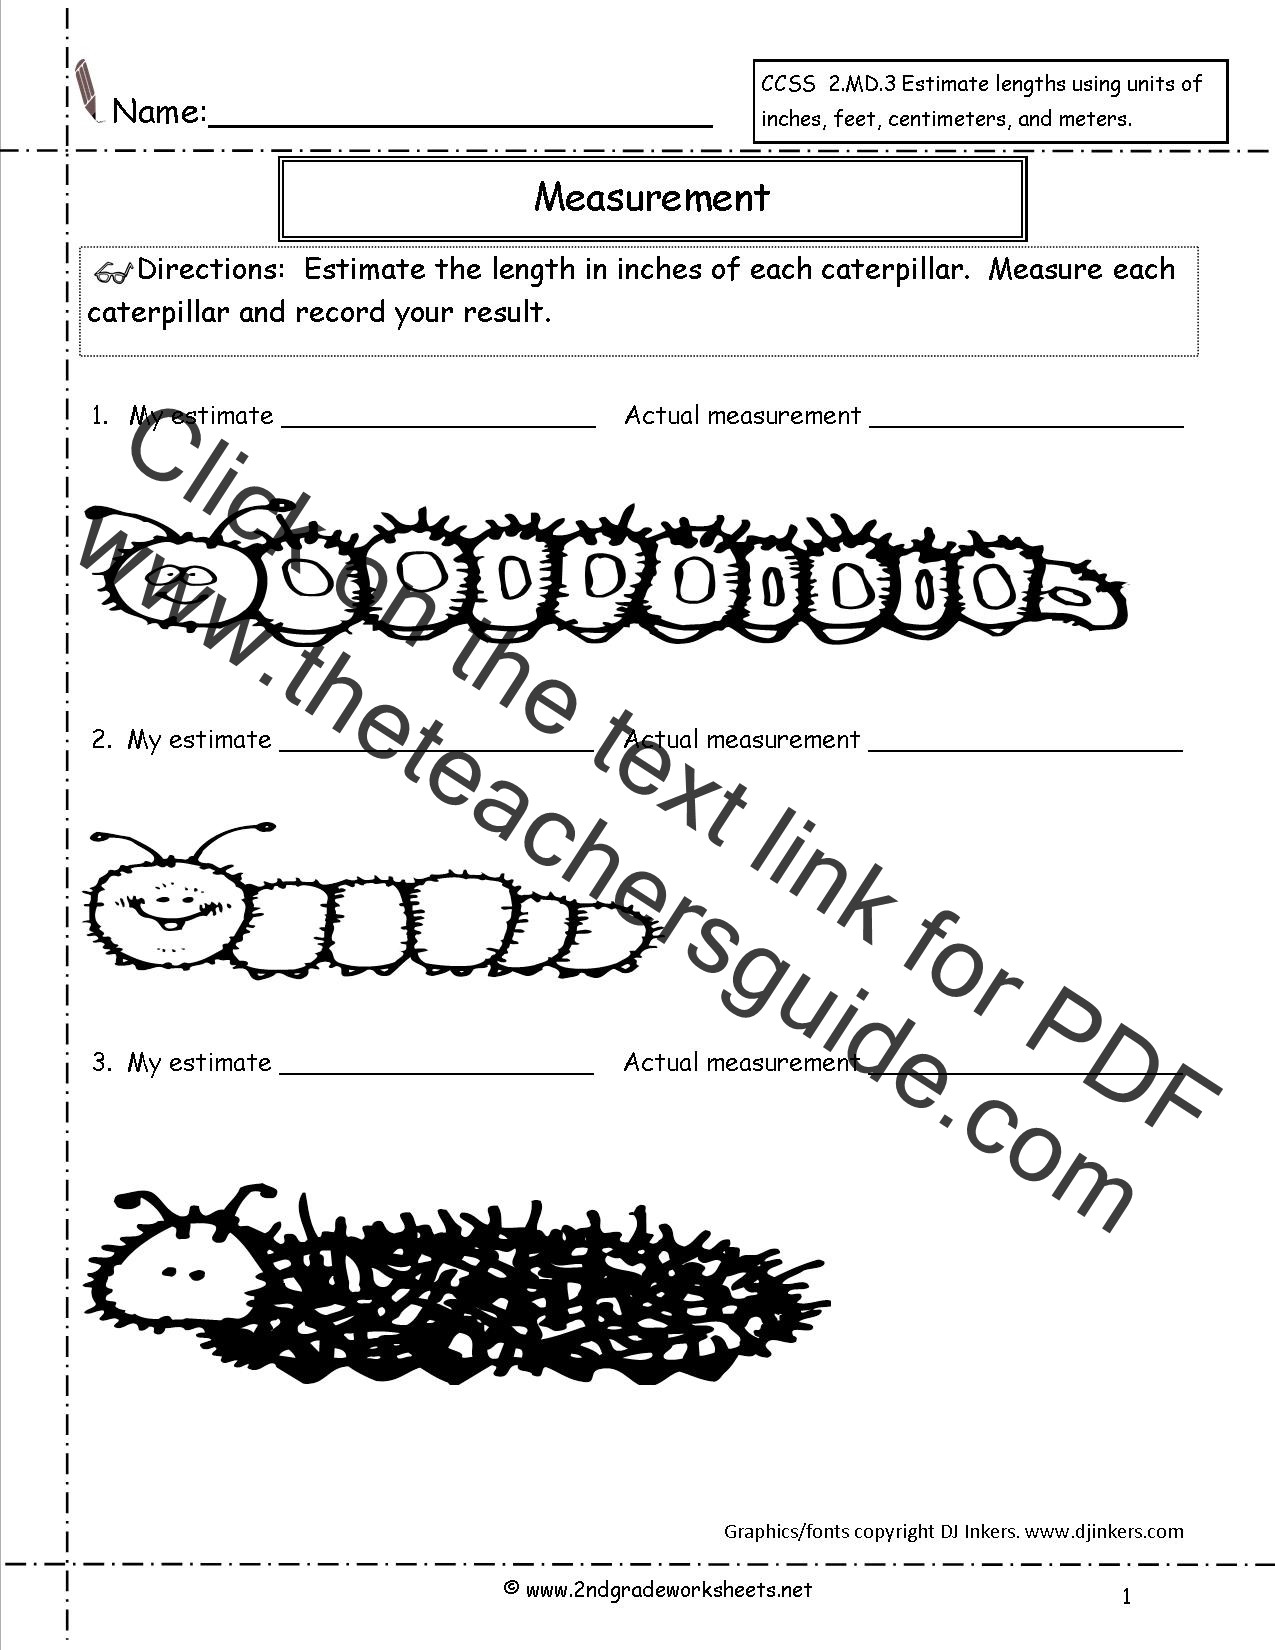 2nd Grade Measurement Worksheets Pdf Ccss 2 Md 3 Worksheets Estimating and Measuring Lengths